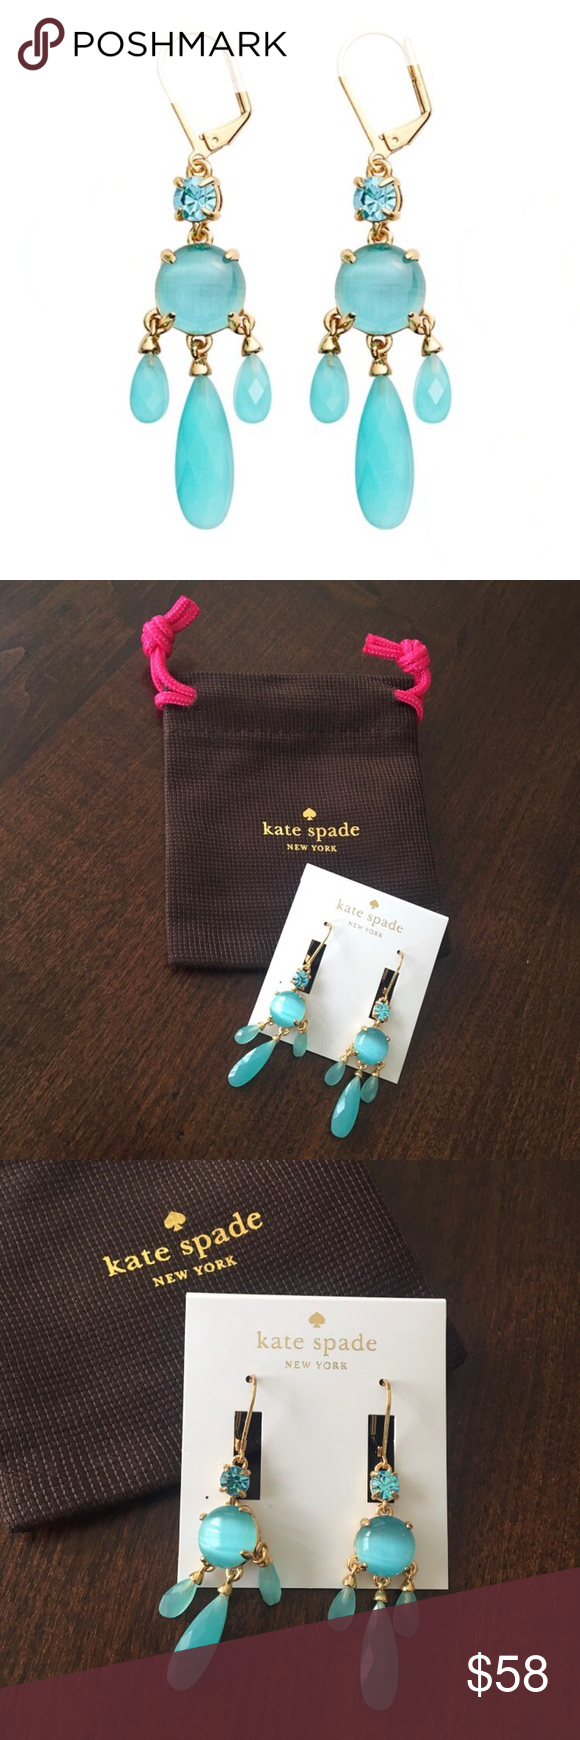 ✨NWT✨ Kate Spade Chandelier Earrings Blue & Gold NWT | Mothers ...